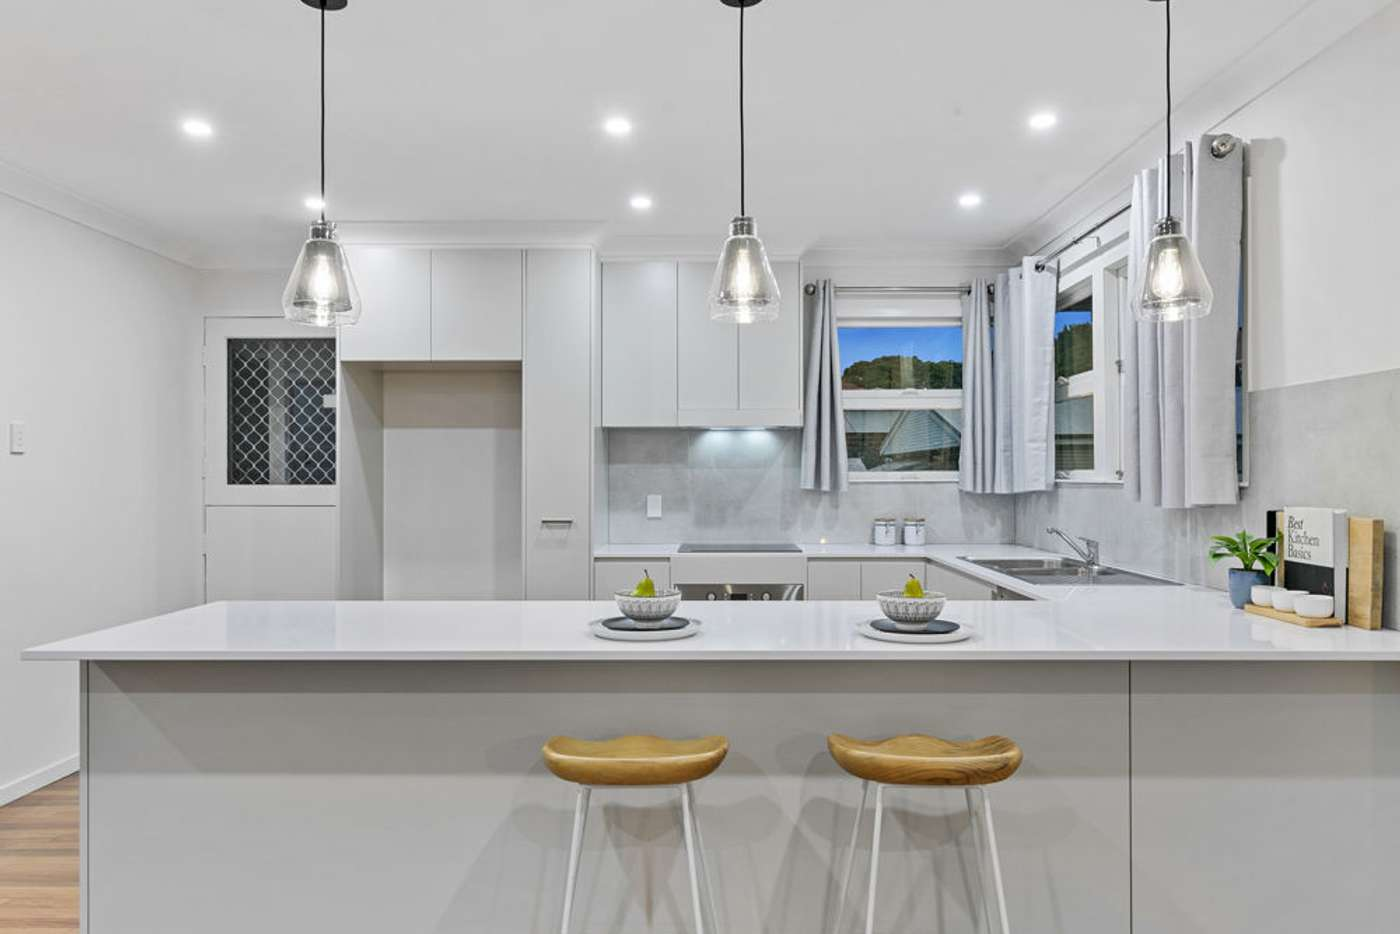 Main view of Homely house listing, 4 Kelston Street, Manly West QLD 4179